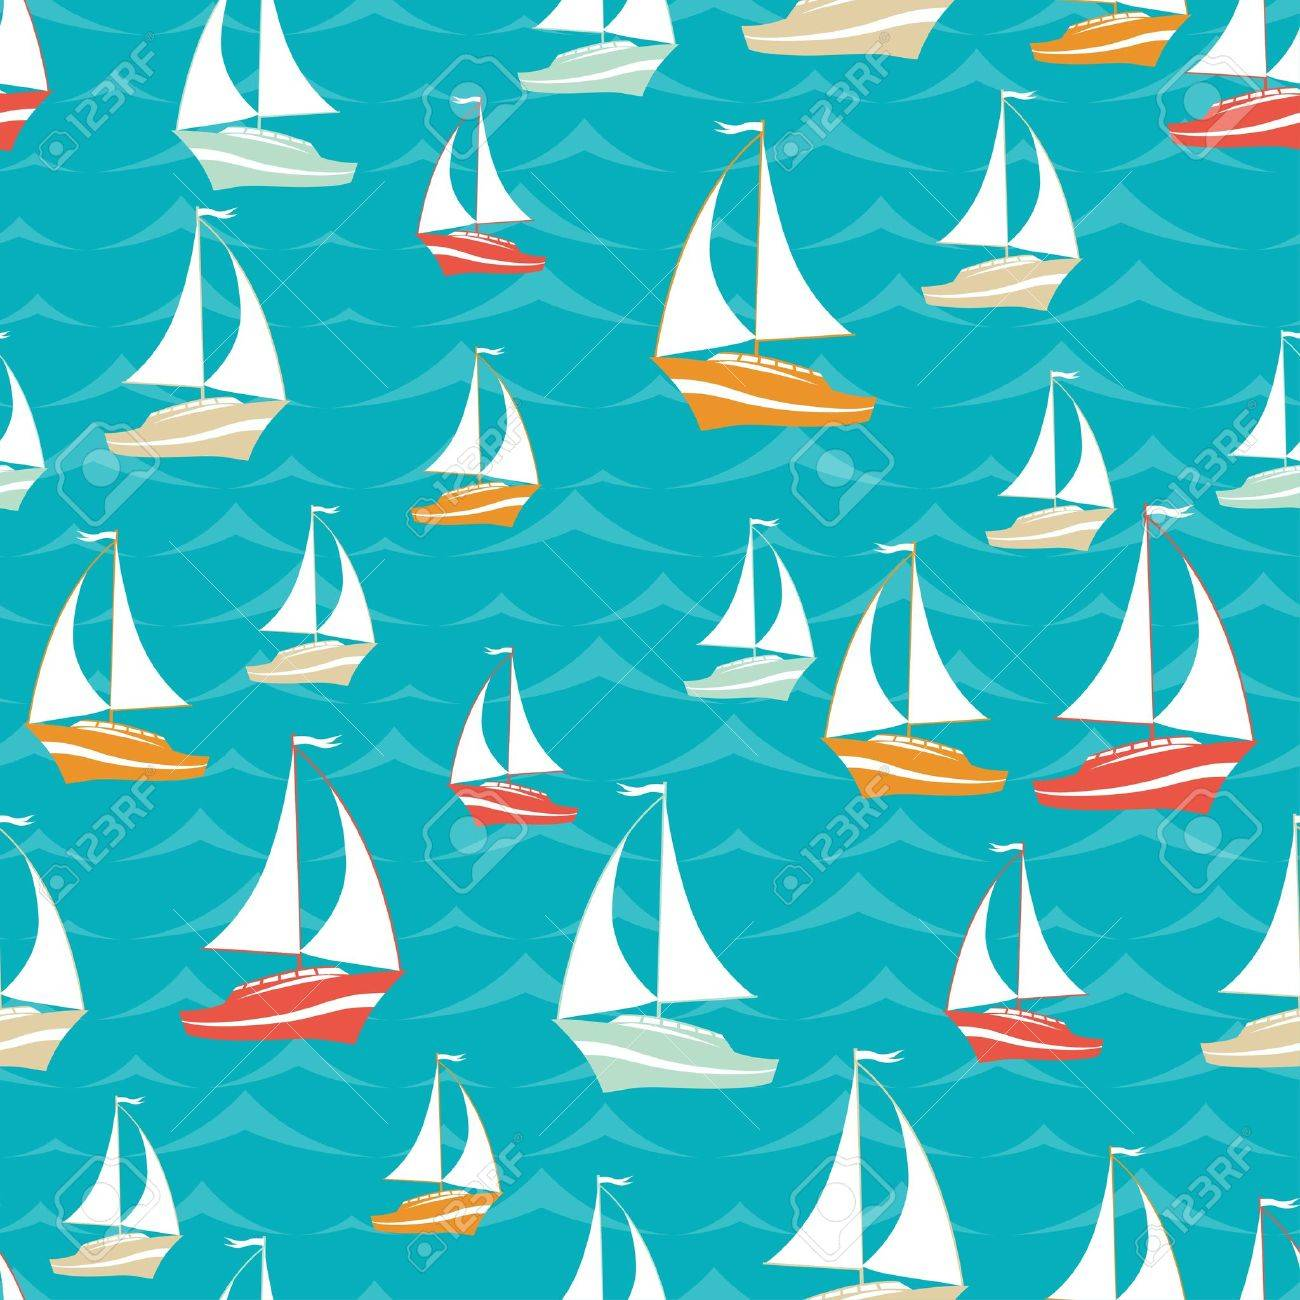 White Sailboats Pattern On A Blue Riverboat Background